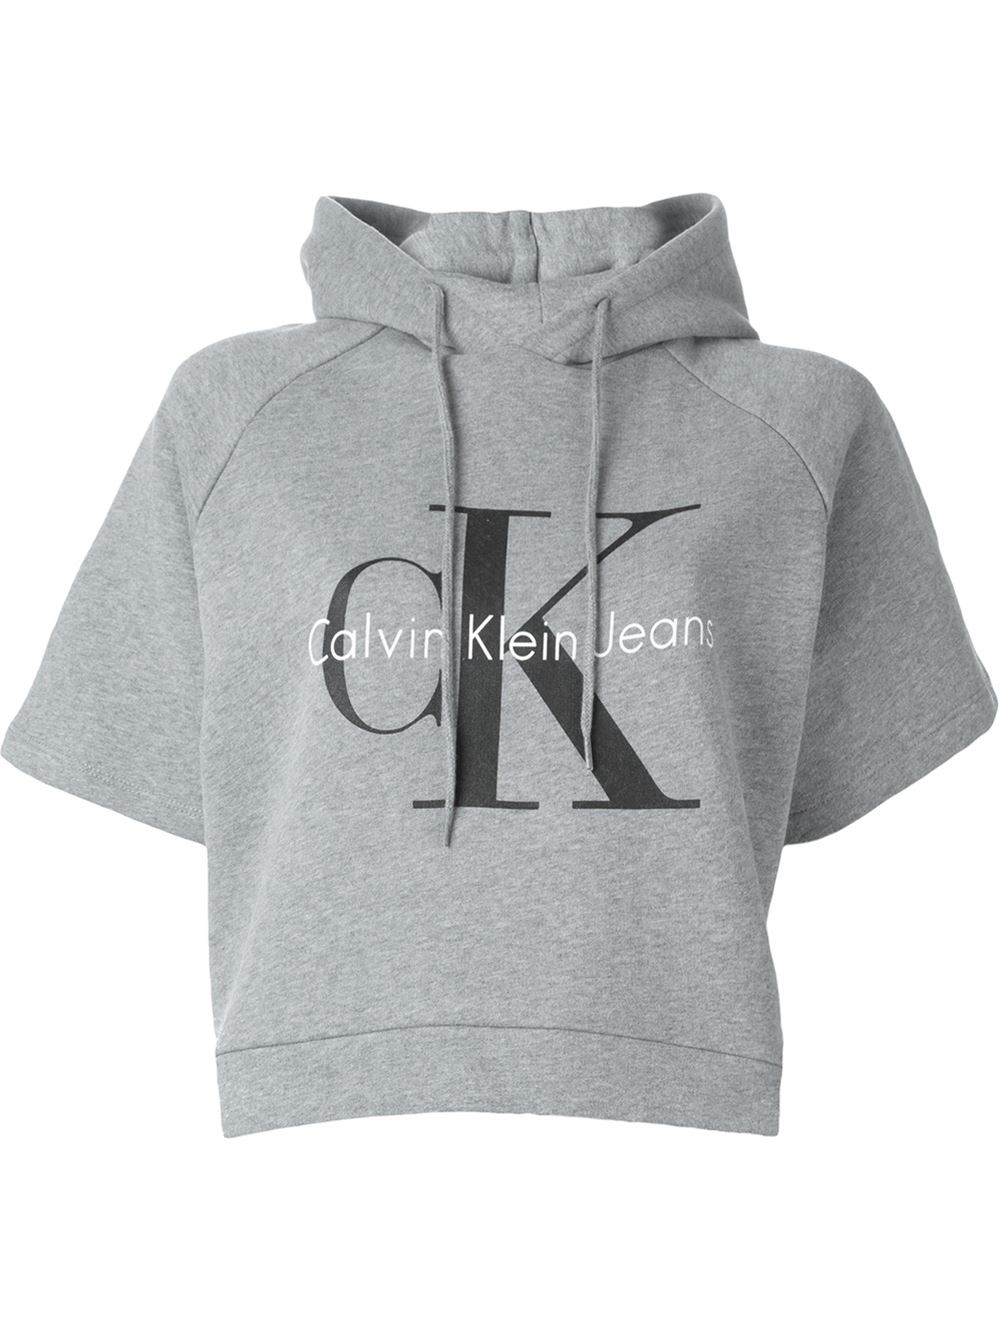 calvin klein jeans logo print cropped hoodie in gray grey. Black Bedroom Furniture Sets. Home Design Ideas